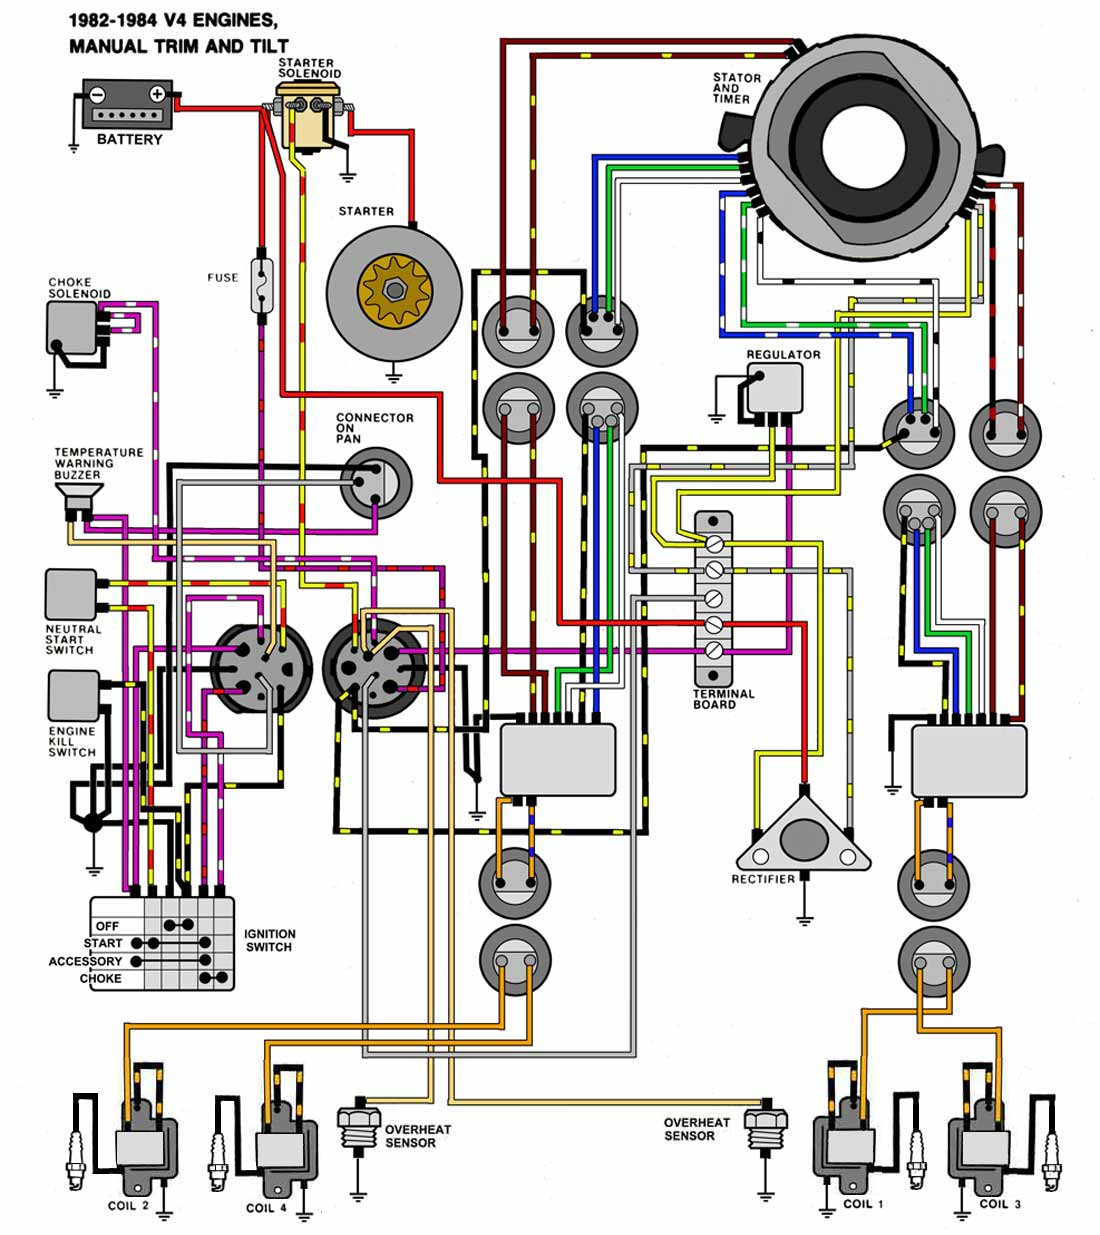 82_84_V4_NOTNT mastertech marine evinrude johnson outboard wiring diagrams evinrude key switch wiring diagram at bakdesigns.co